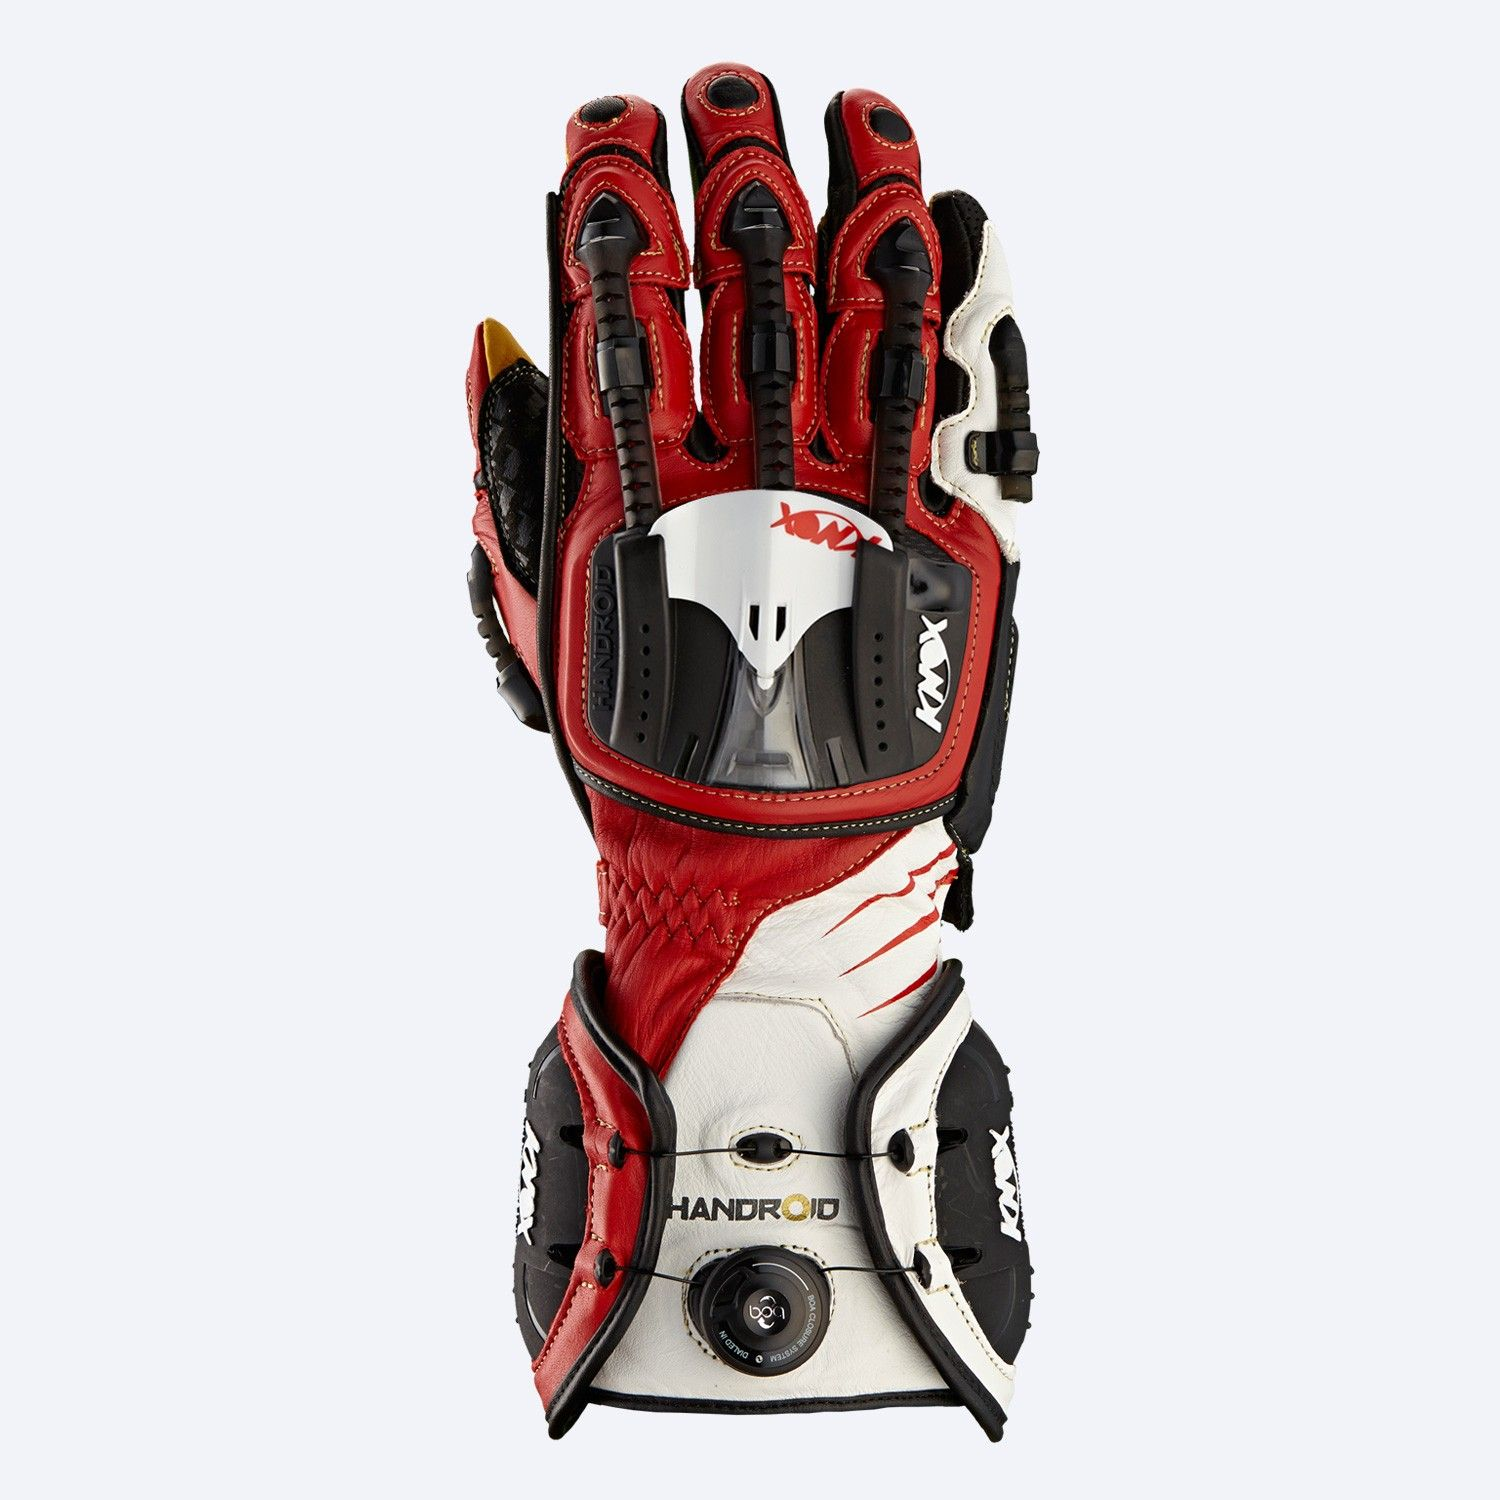 Motorcycle gloves made in pakistan - Handroid The Best Motorcycle Gloves In The World